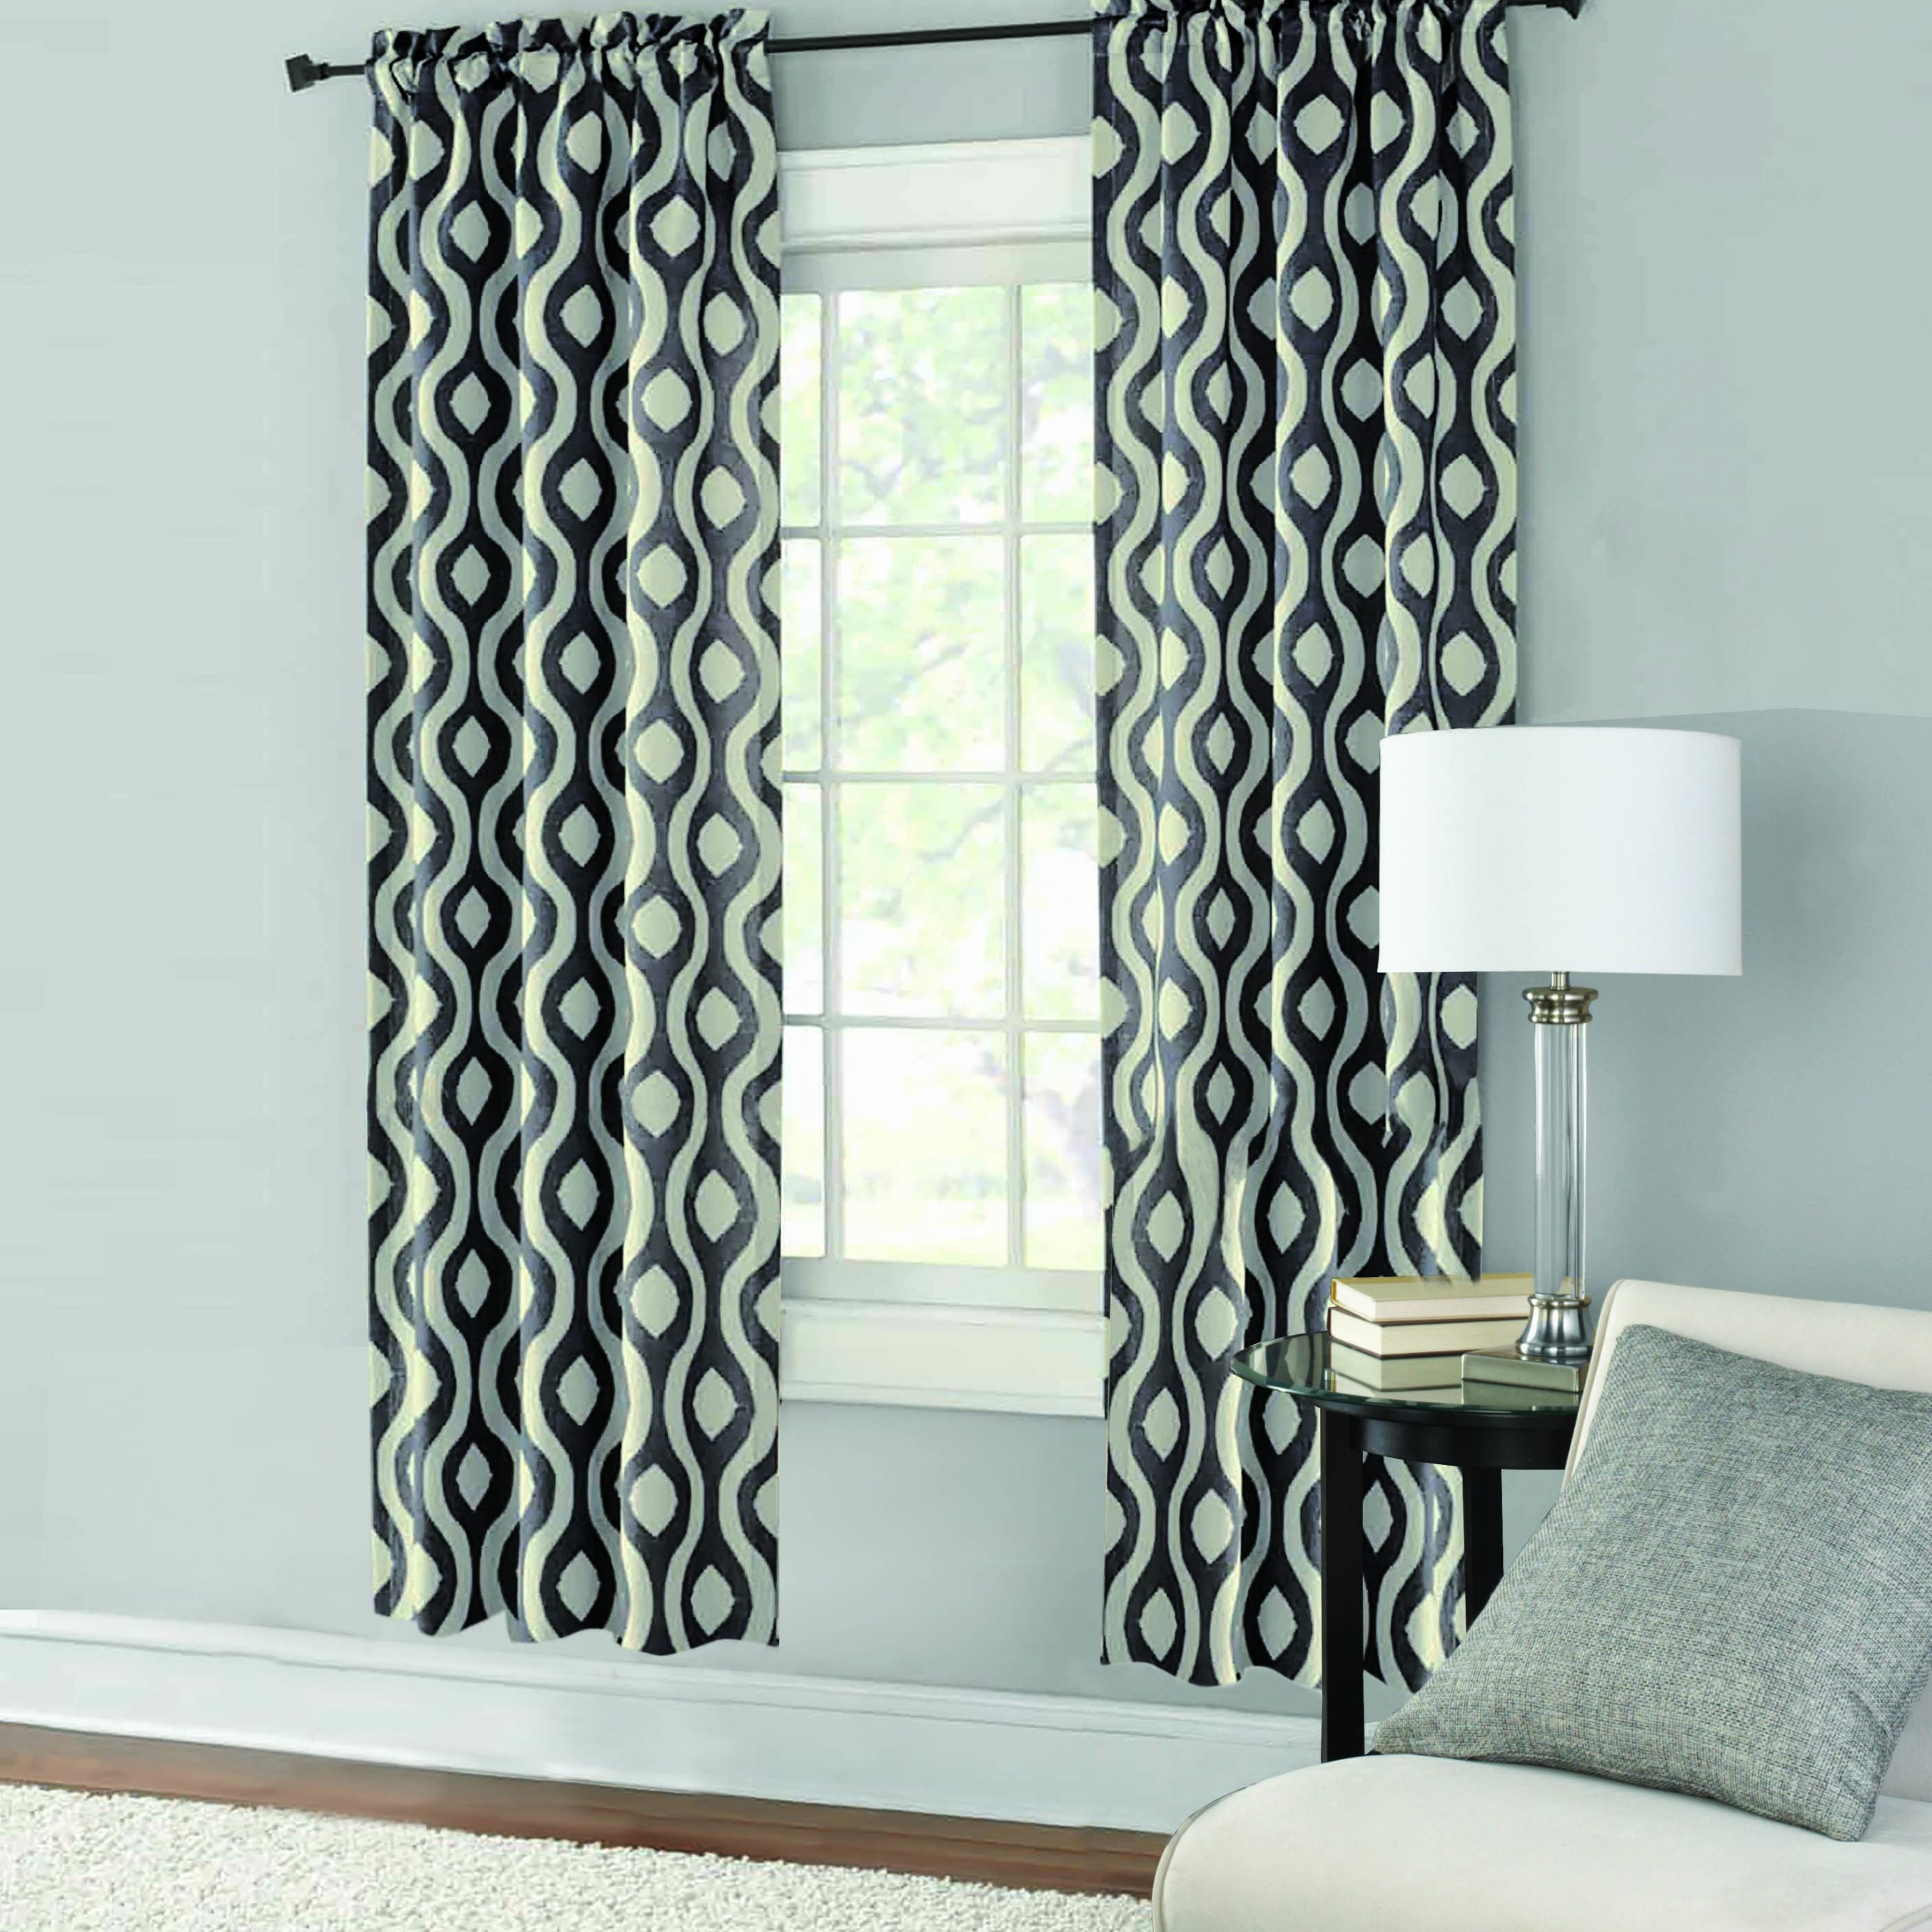 Mainstays Thermal Wave Print Room Darkening Window Curtain Panel Pair Intended For Most Current Room Darkening Window Curtain Panel Pairs (Gallery 1 of 20)